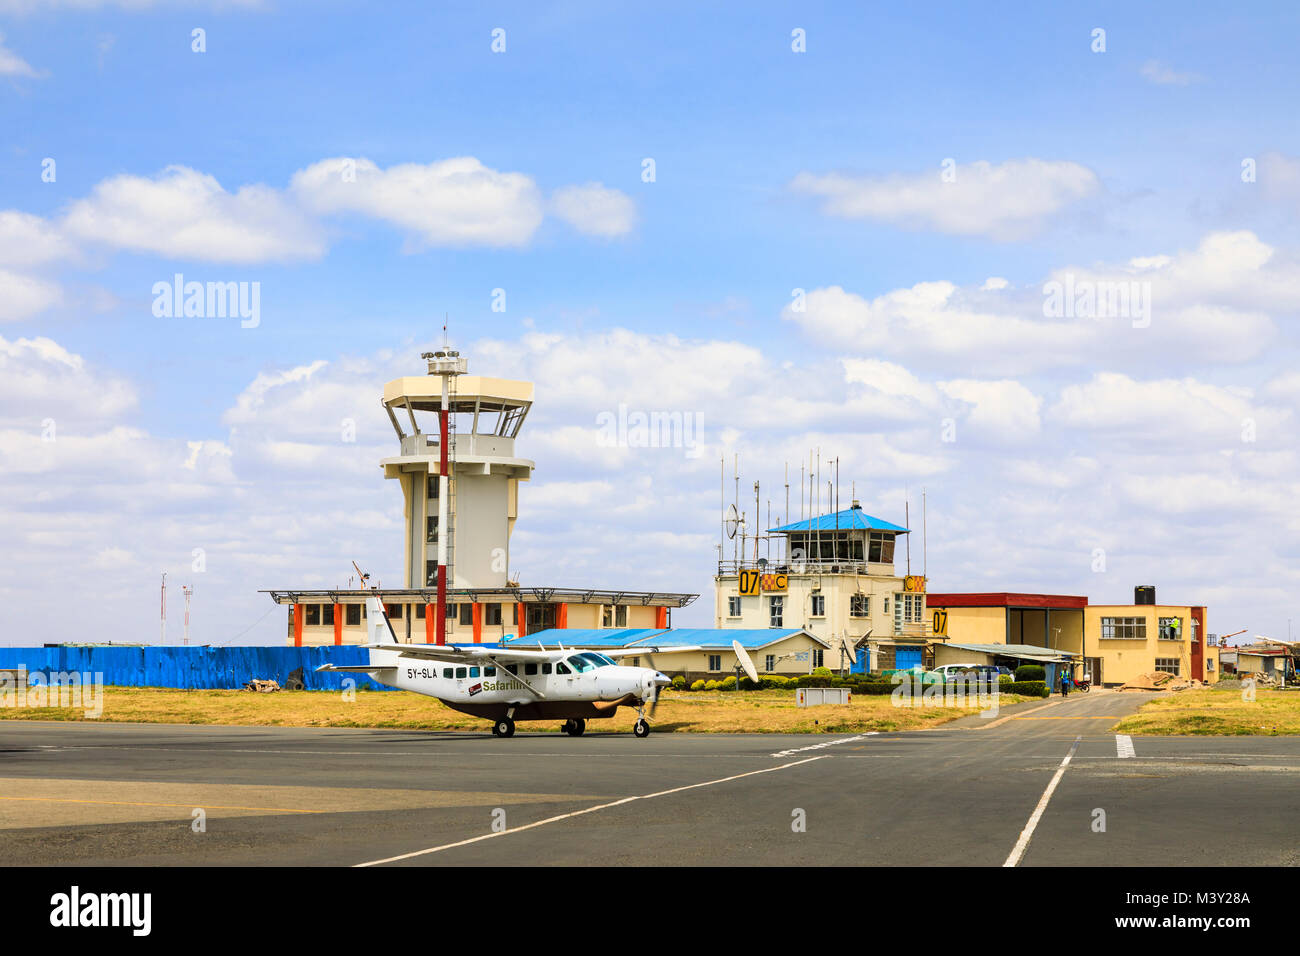 Safarilink aircraft taxiing by the control tower at Wilson Airport, the local airport in Nairobi, used for domestic - Stock Image